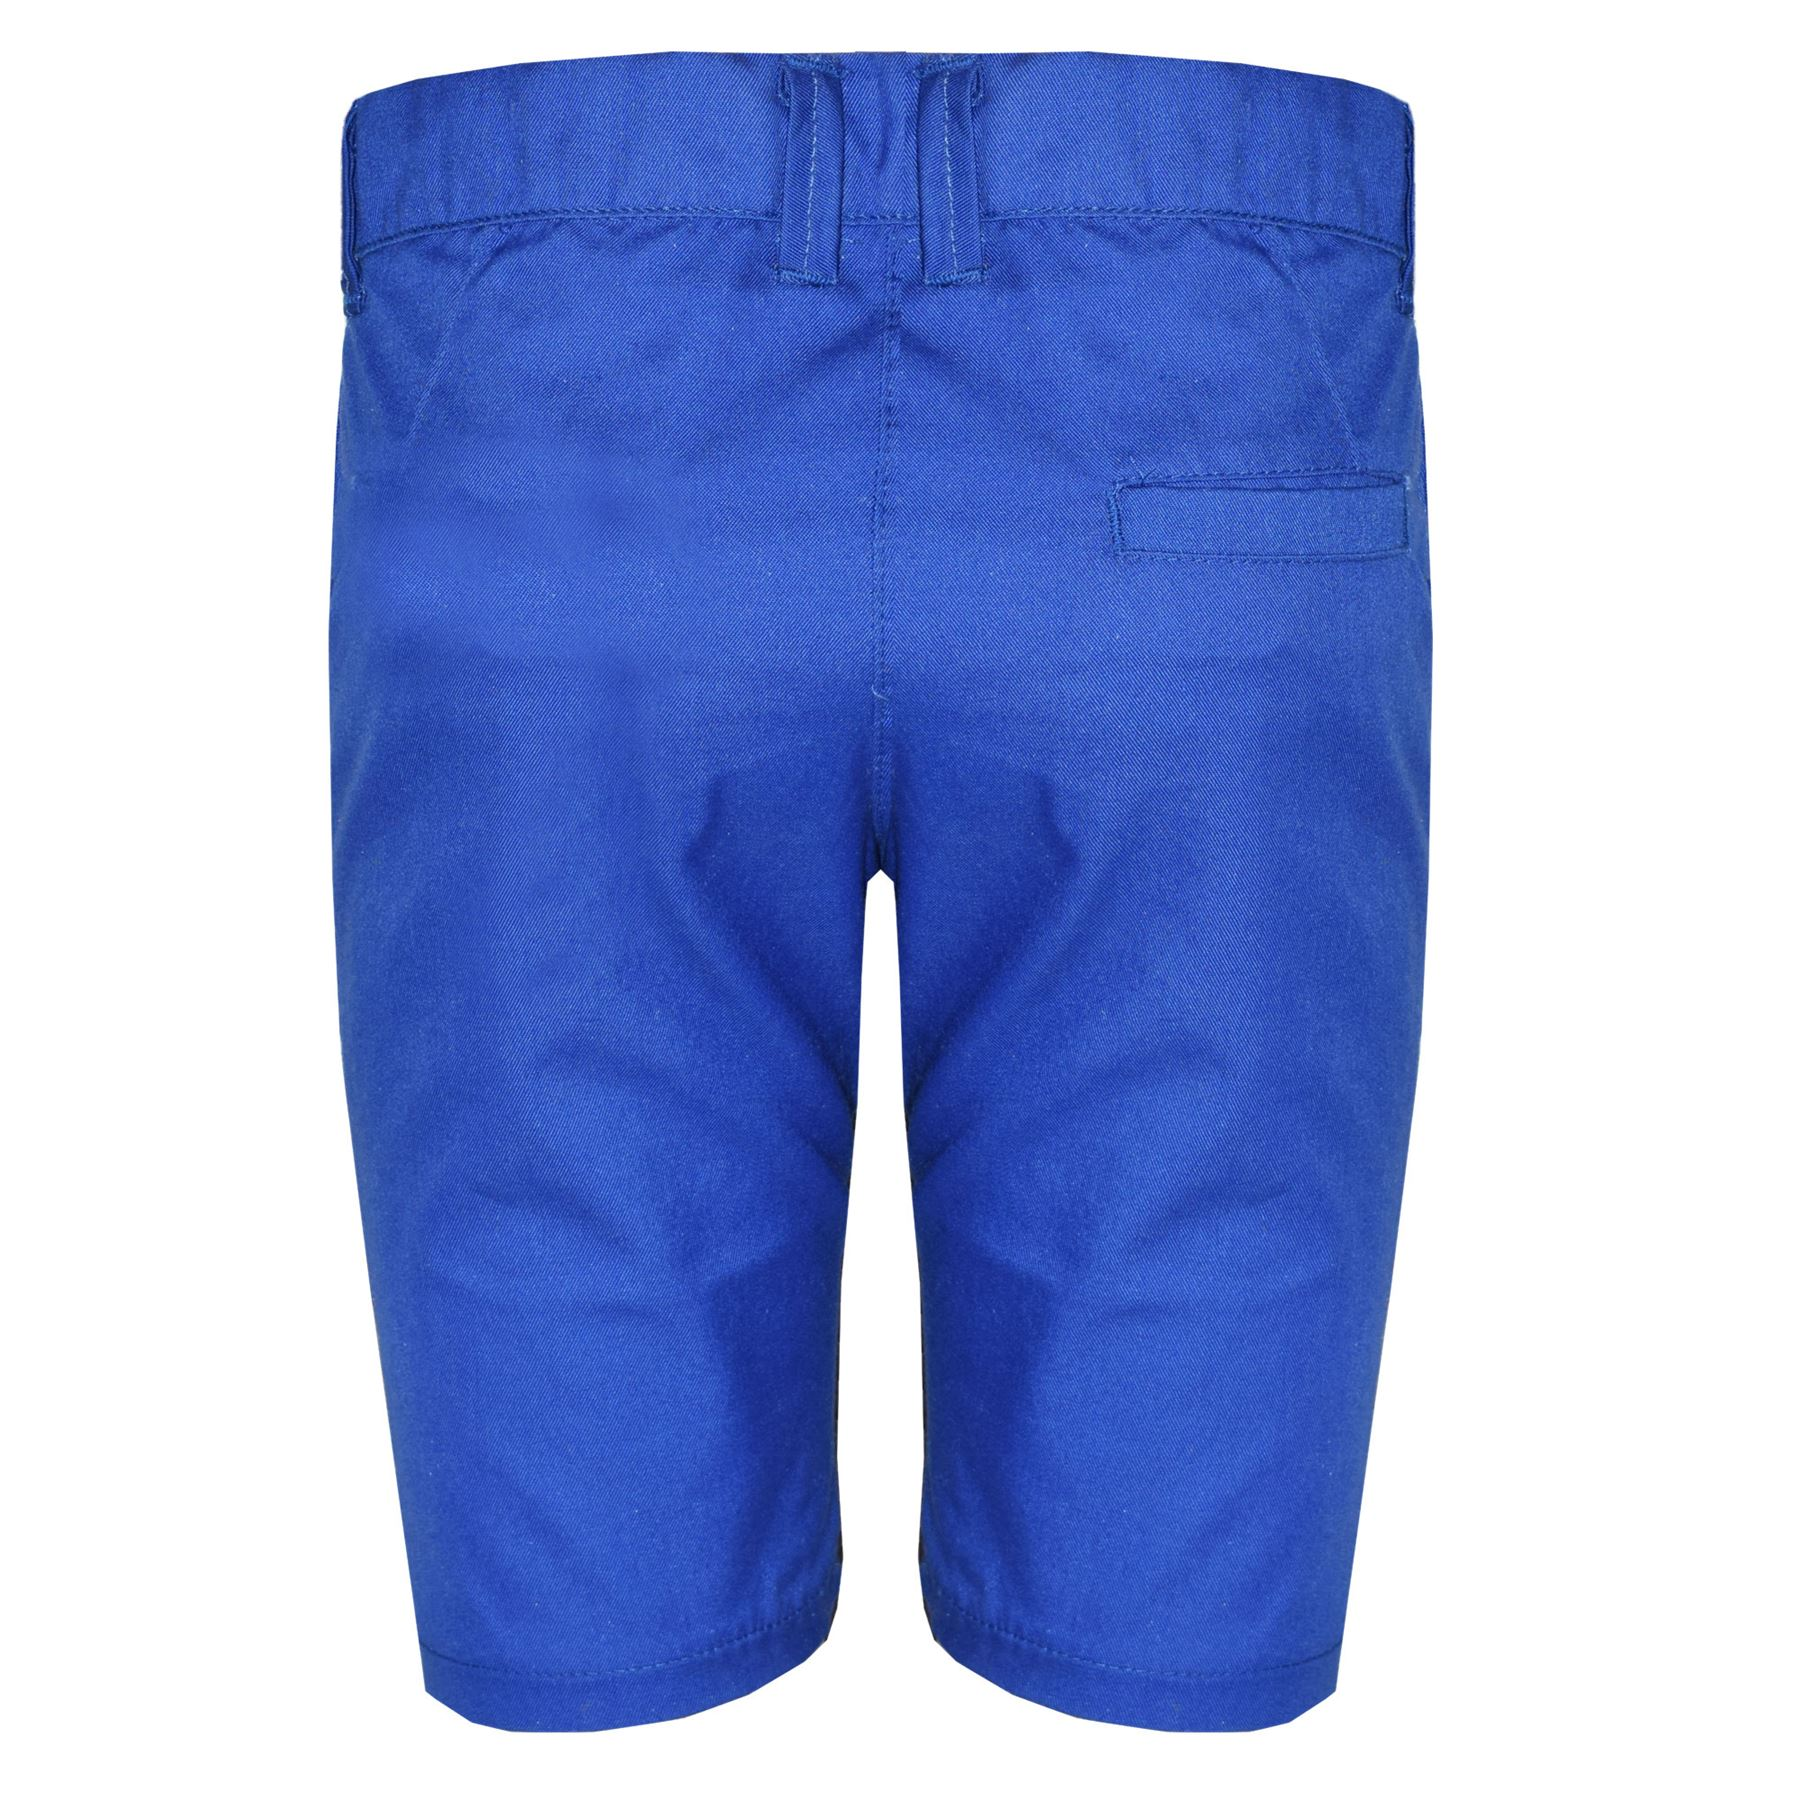 Boys-Shorts-Kids-Chino-Shorts-Summer-Knee-Length-Half-Pant-New-Age-3-16-Years thumbnail 17